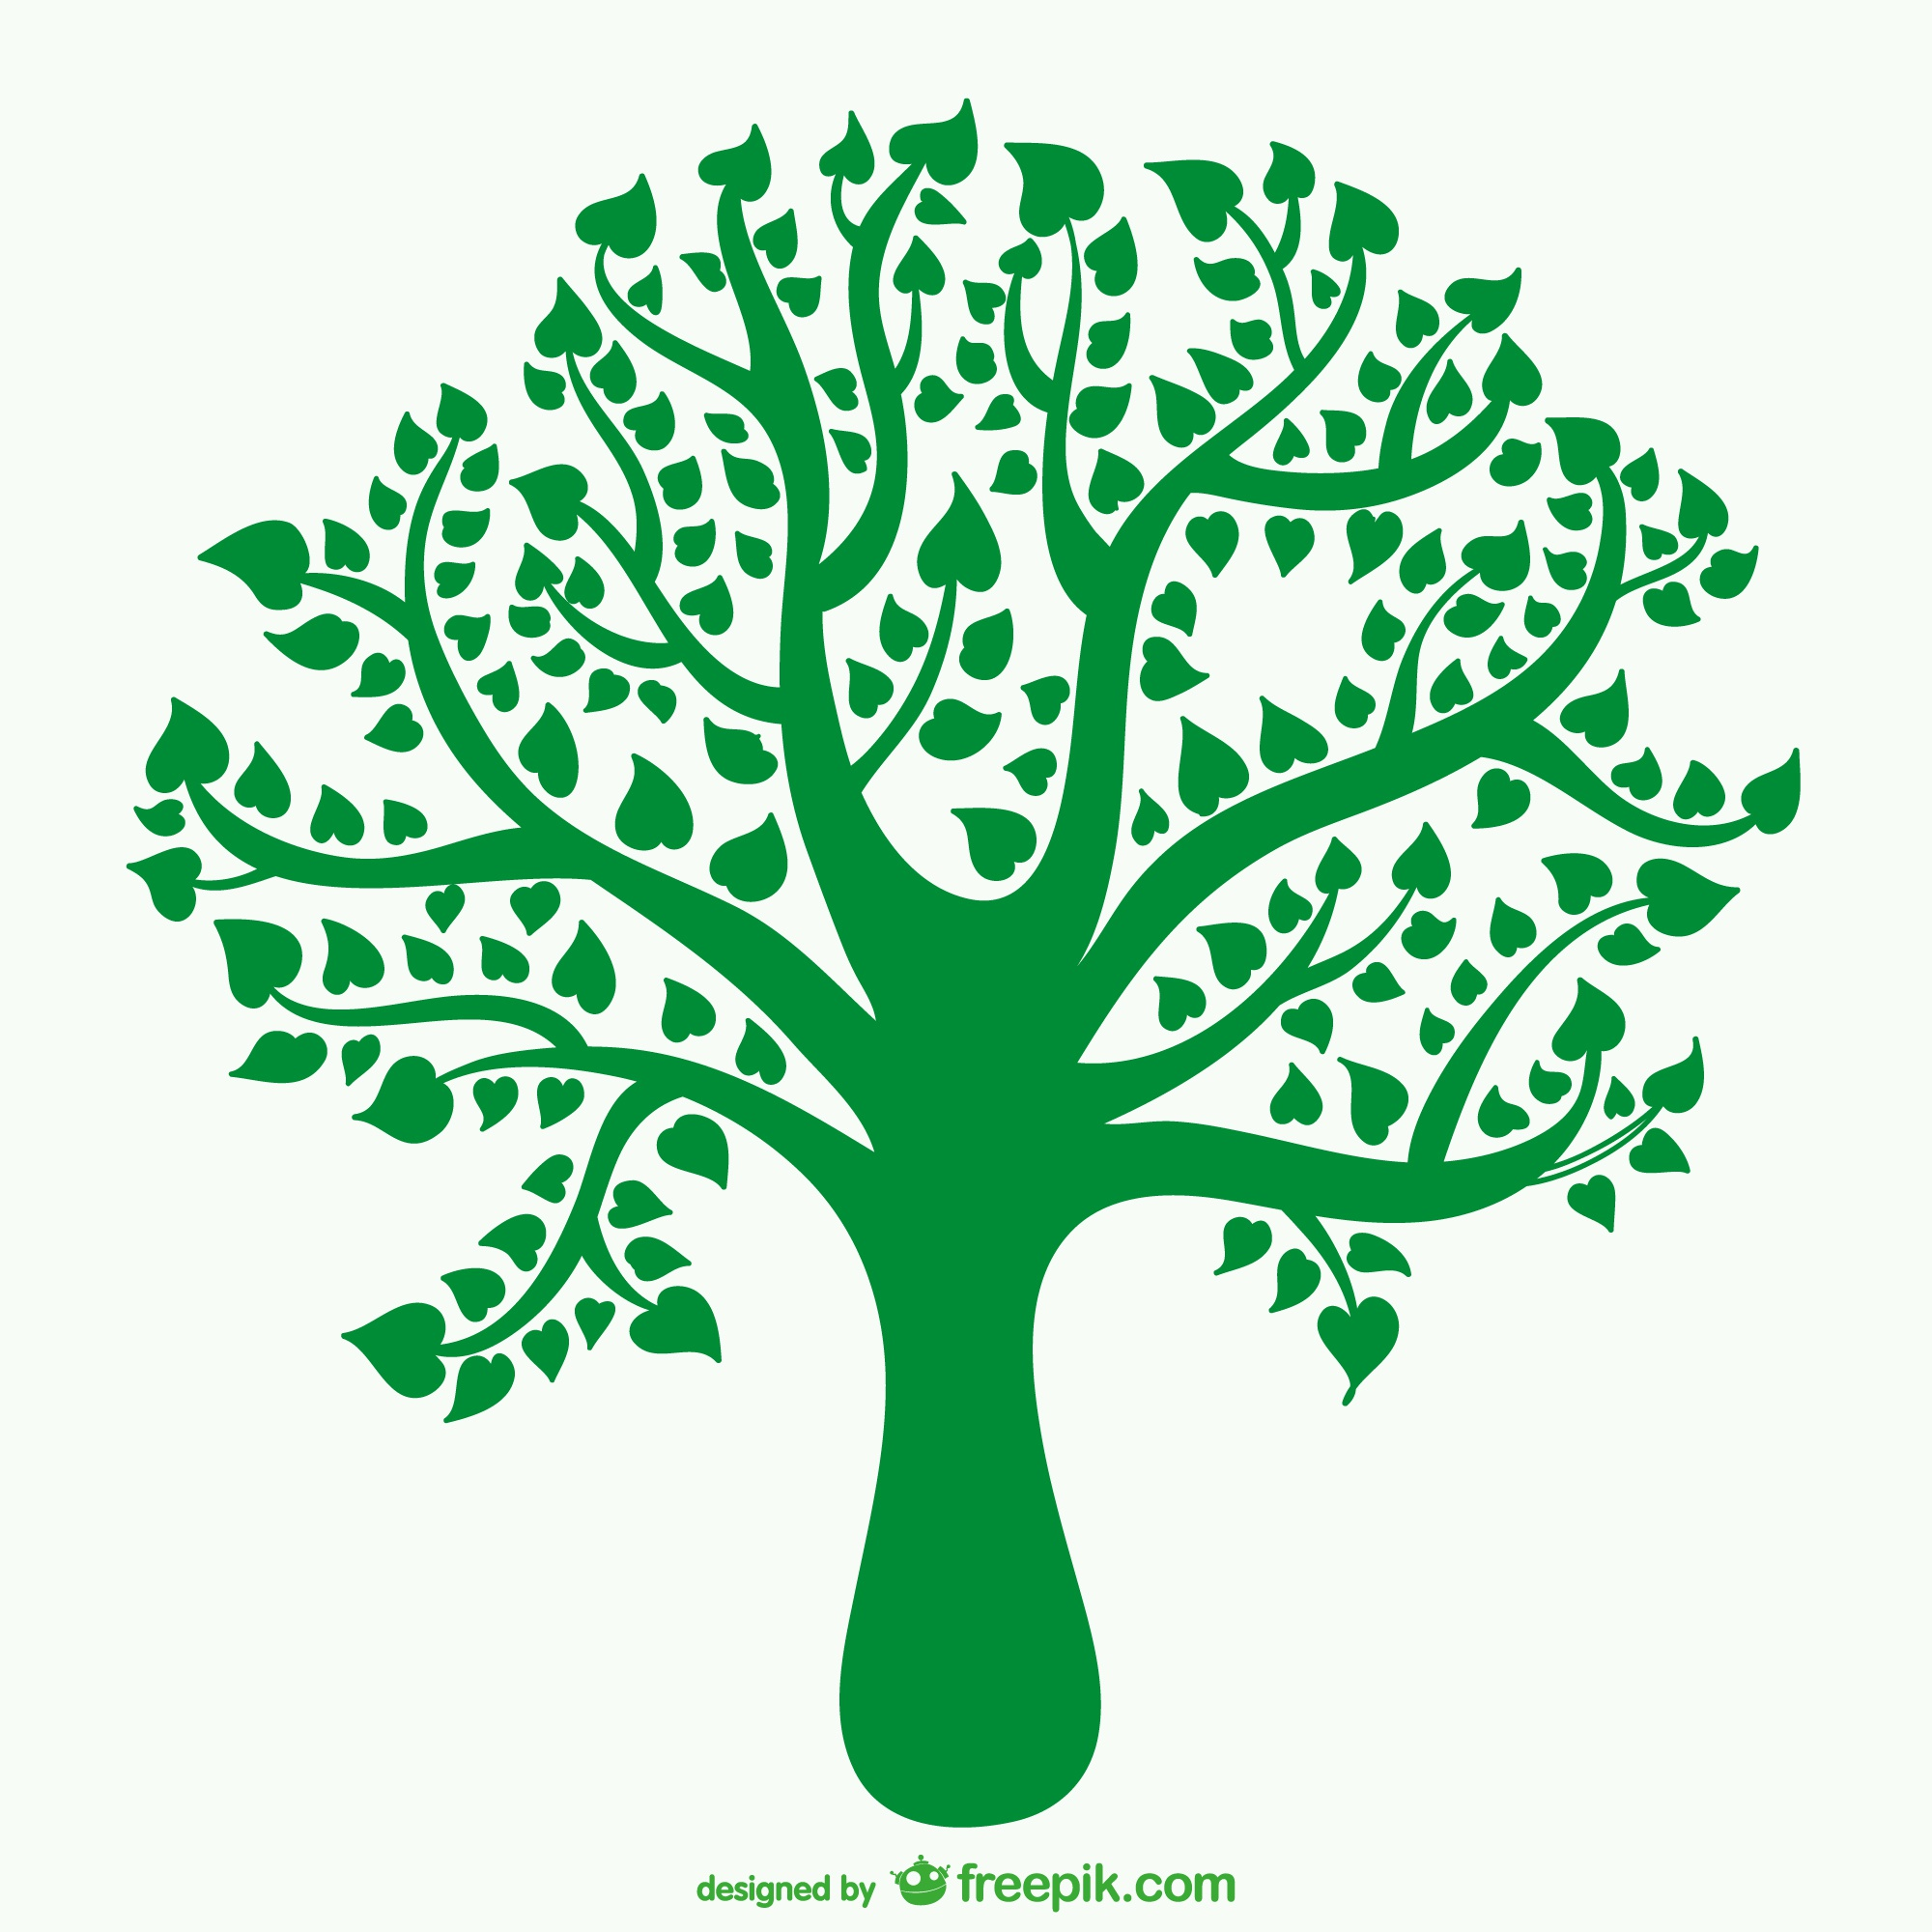 Tree silhouette with heart shaped leaves